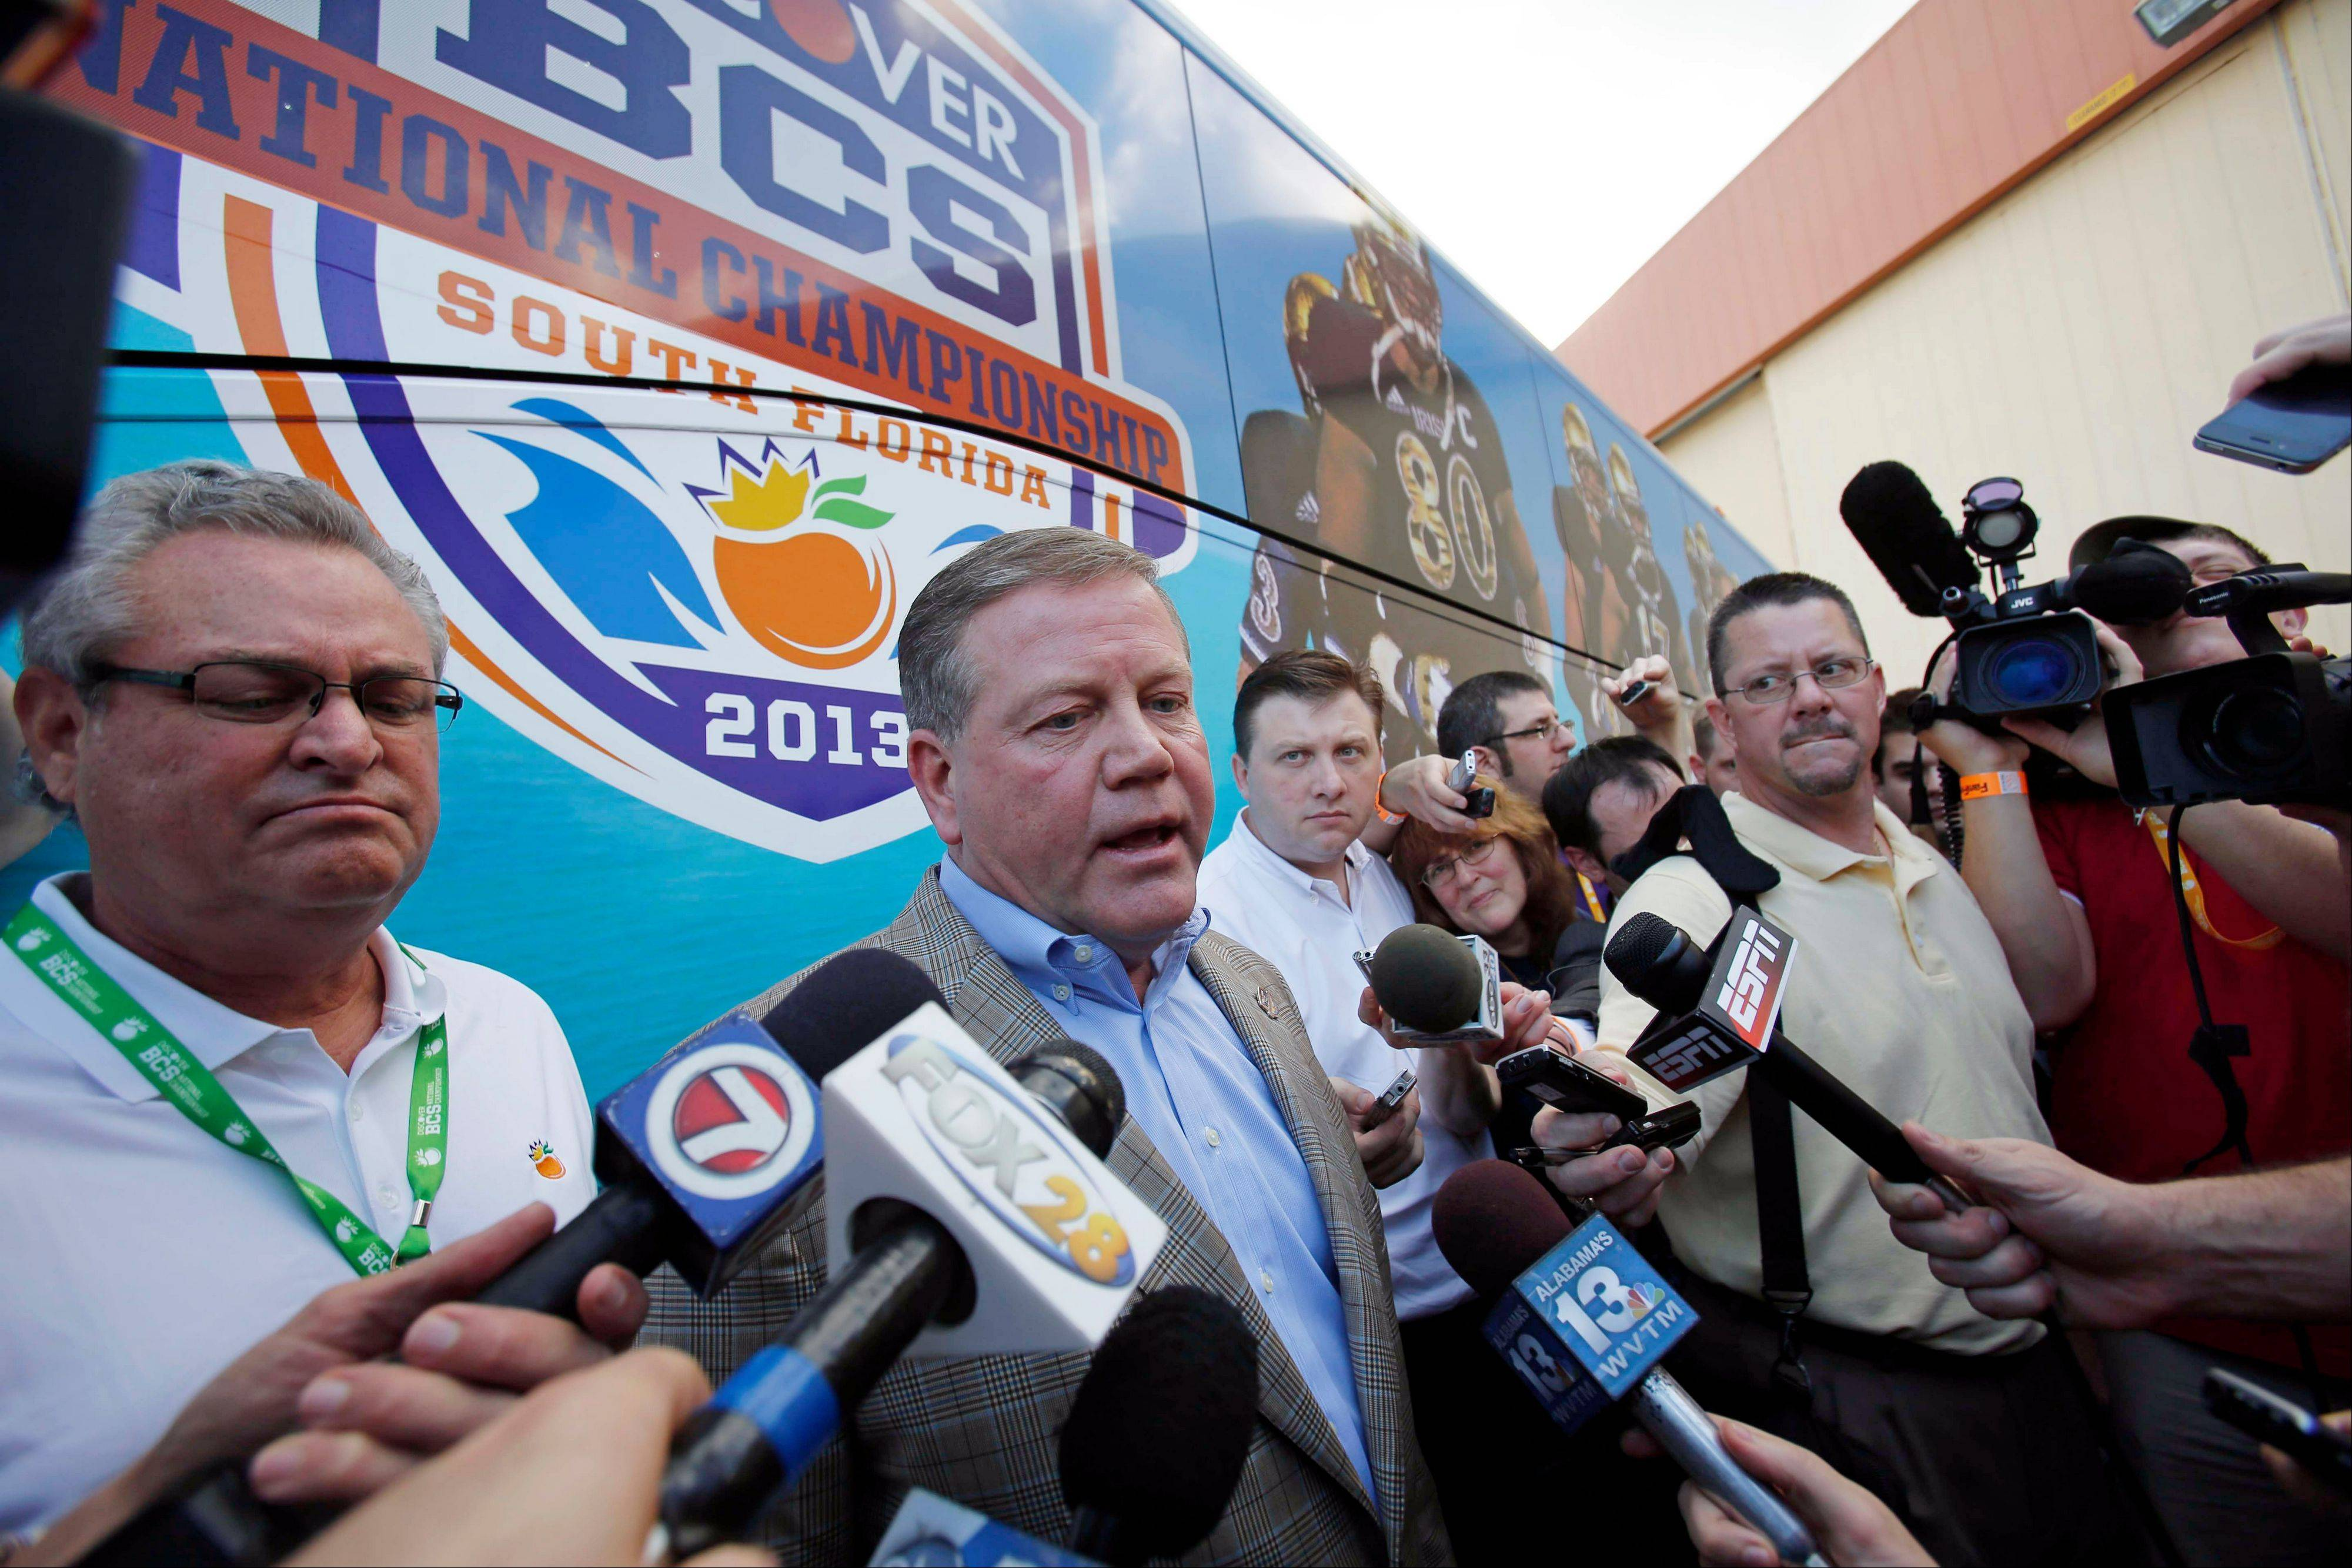 Notre Dame head coach Brian Kelly talks to reporters Wednesday after arriving in Fort Lauderdale, Fla. Notre Dame takes on Alabama in the BC national championship NCAA college football game next Monday in Miami.